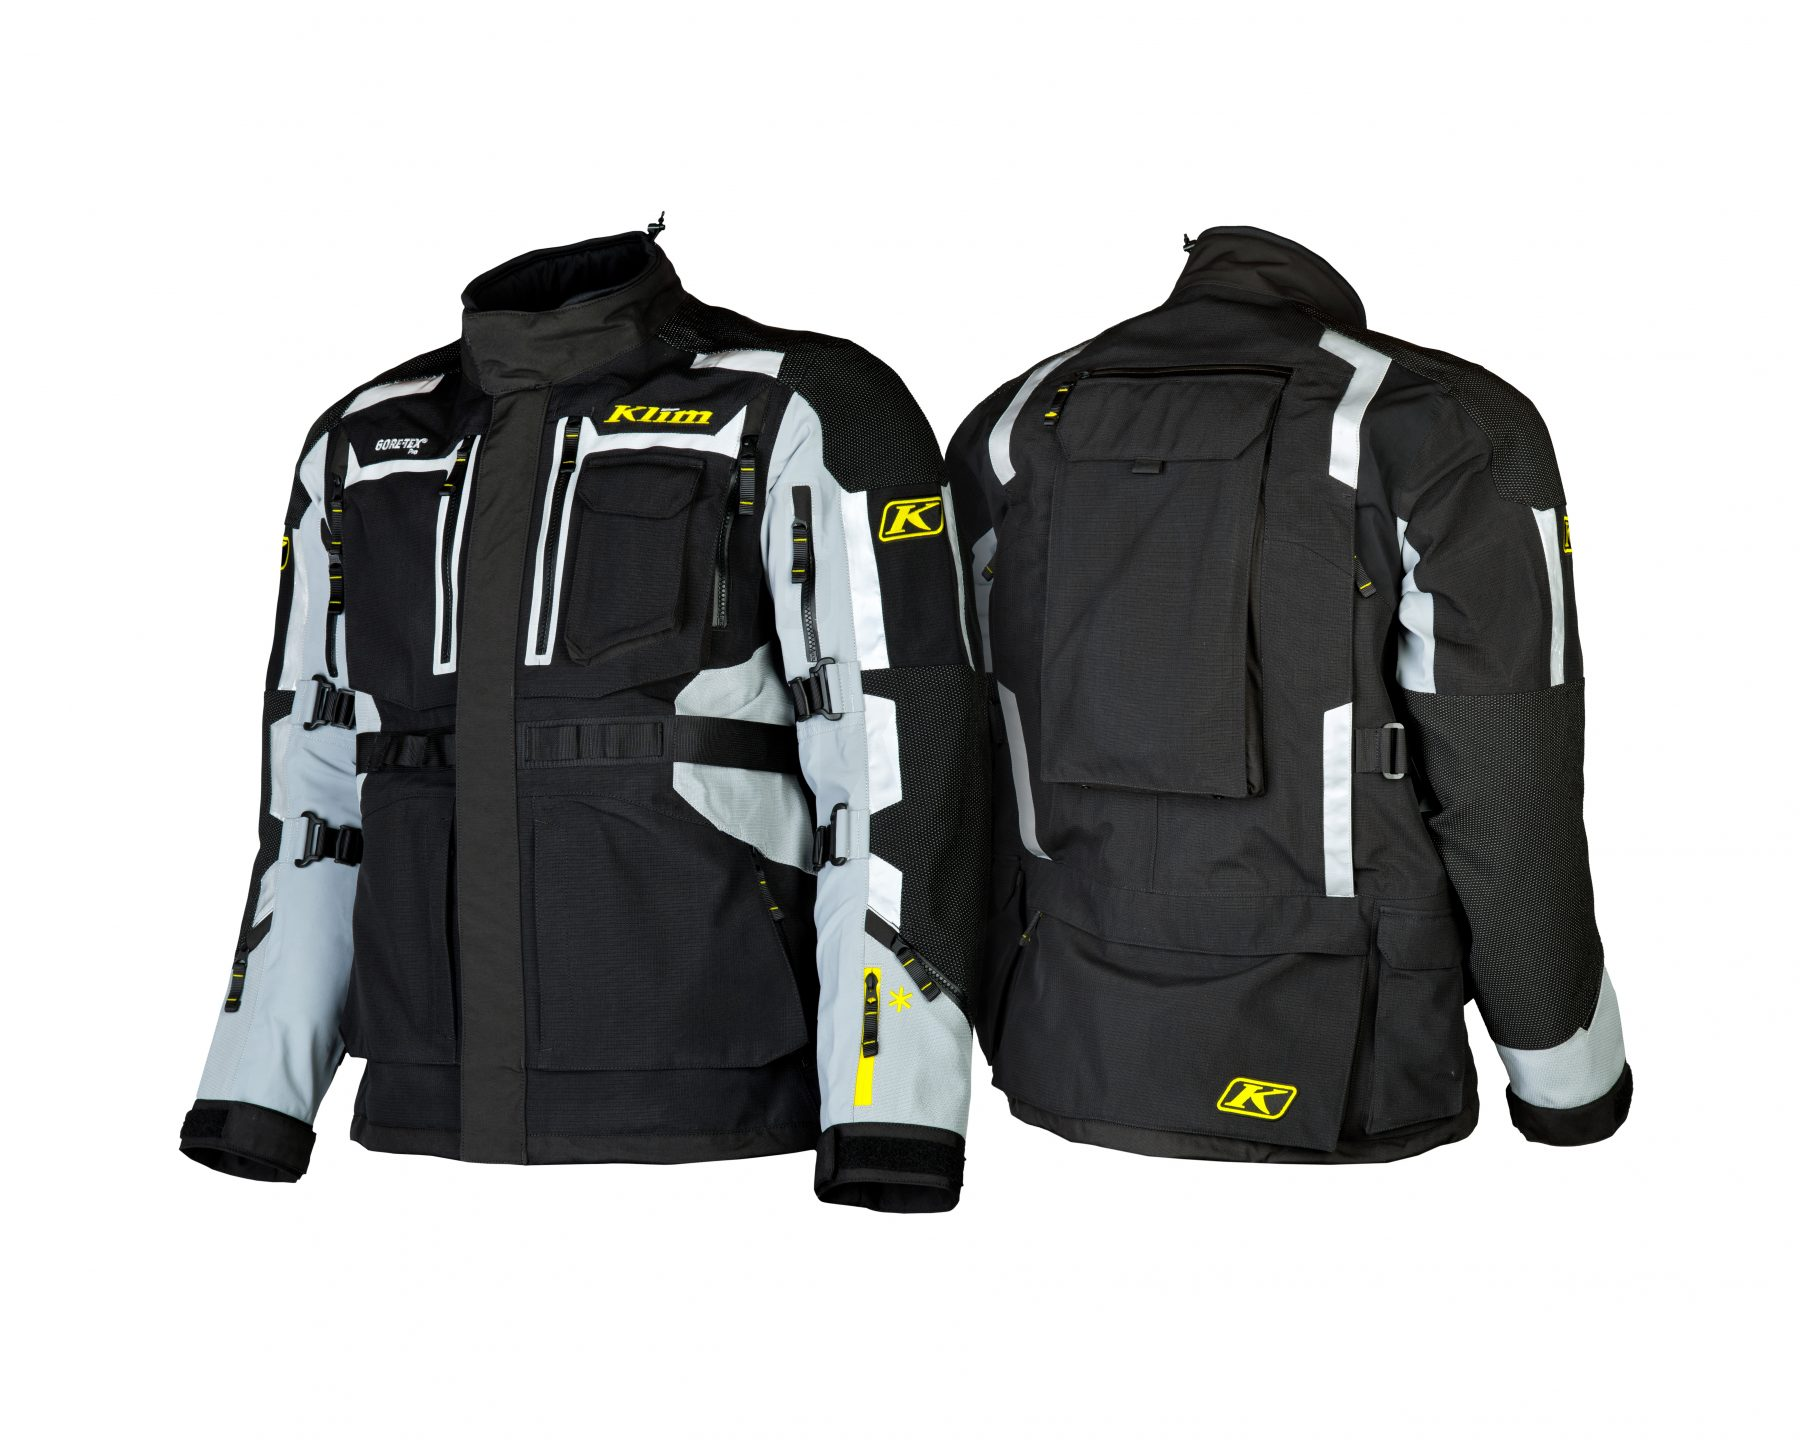 S Adventure Rally Jacket 3291-004-600